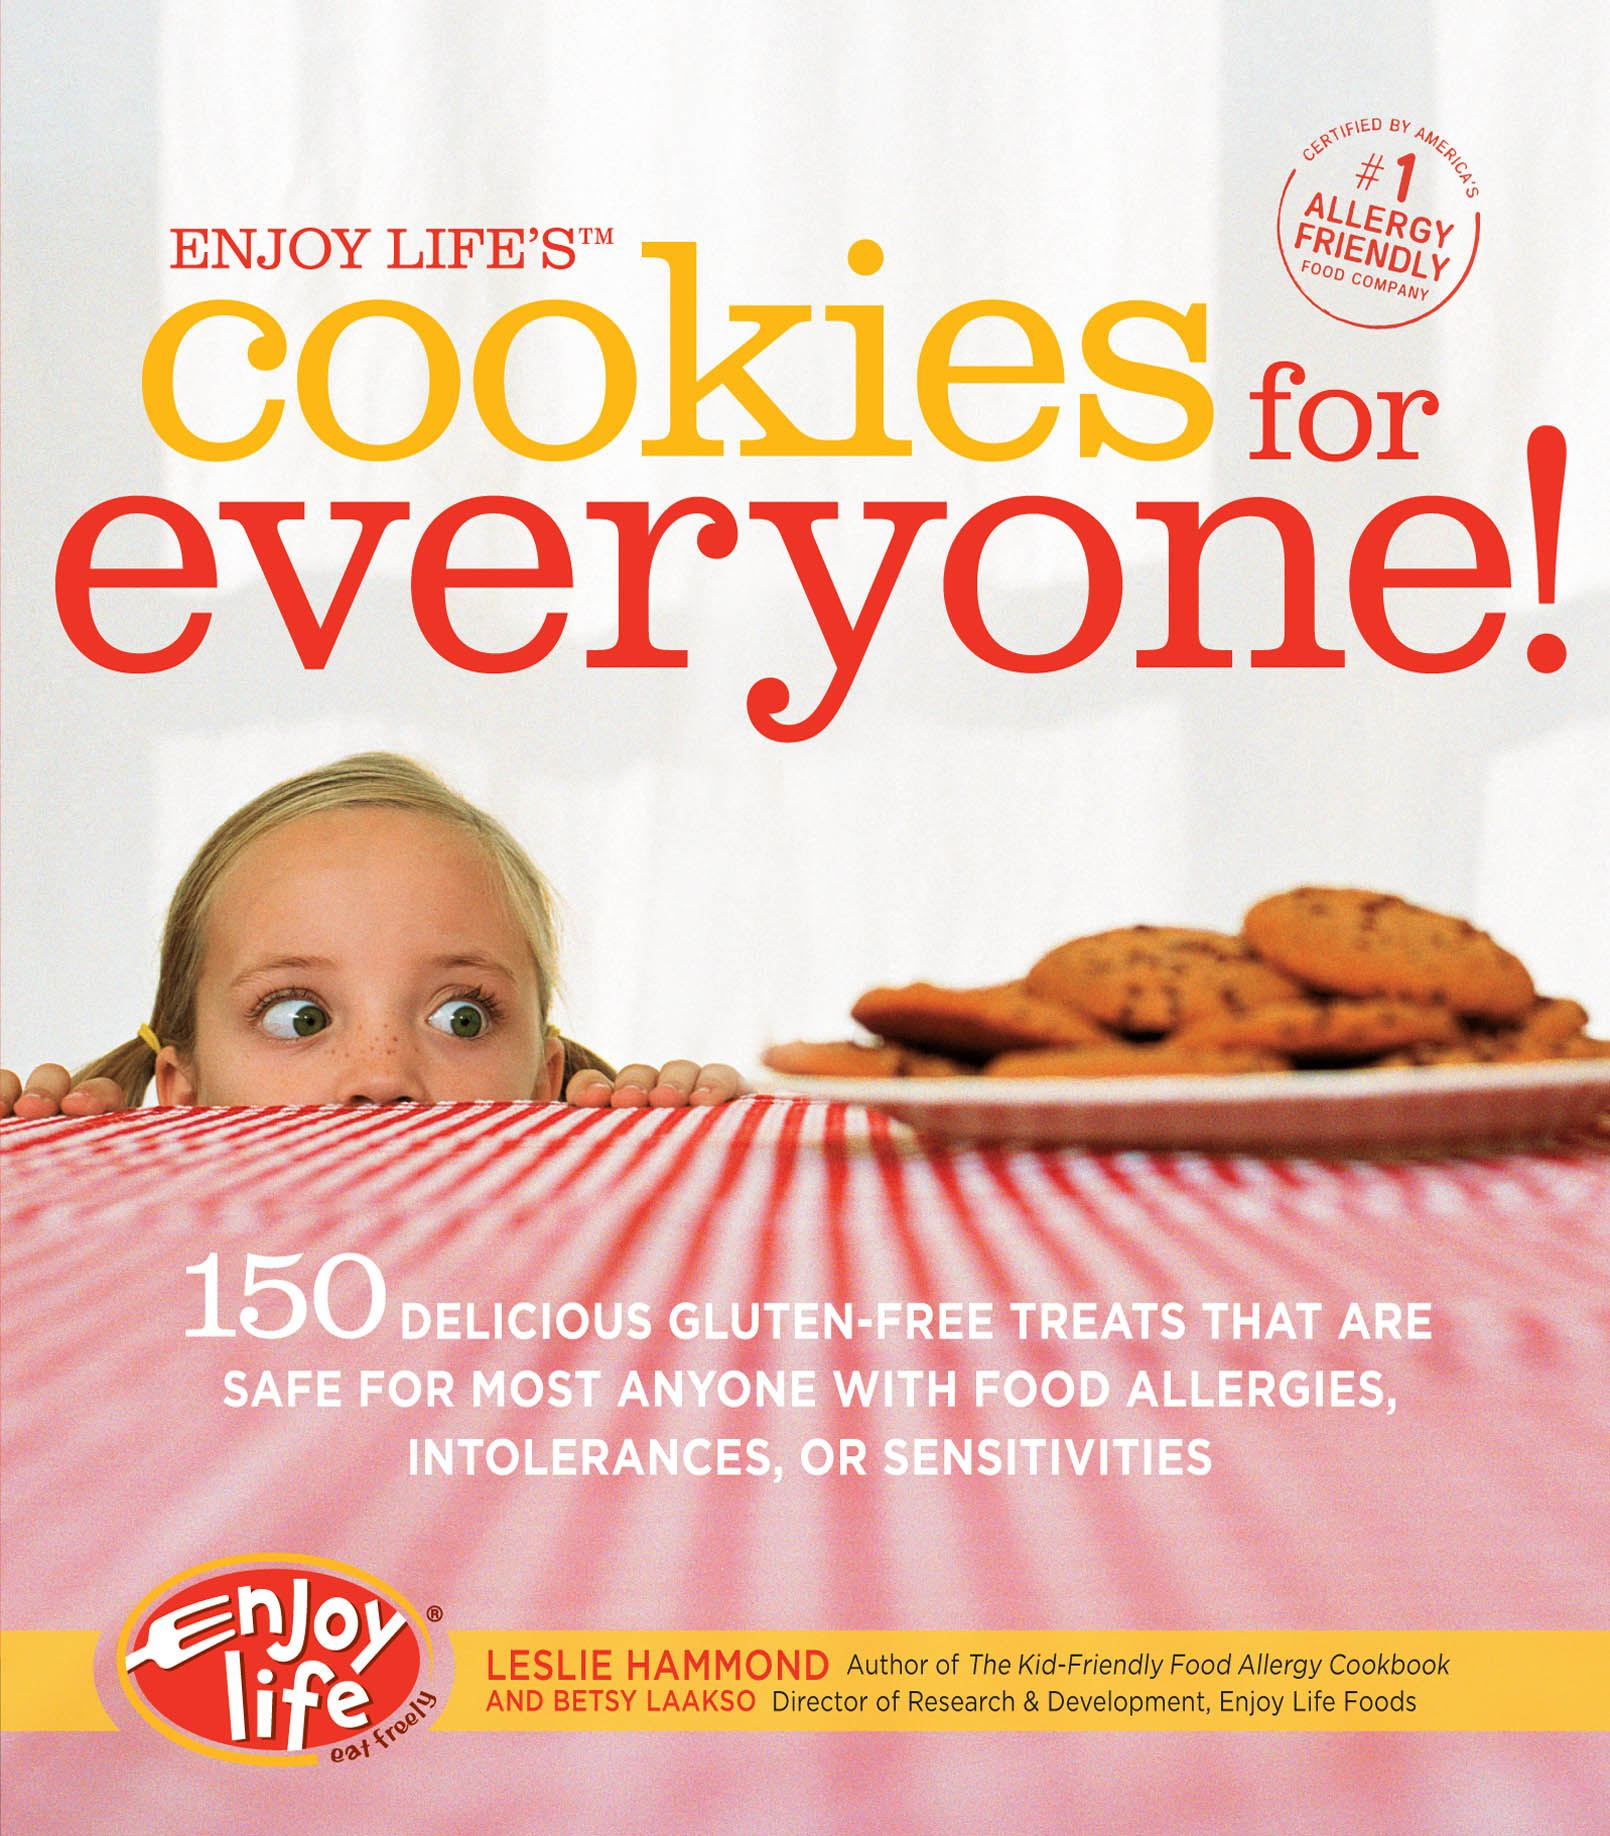 Enjoy Life's Cookies for Everyone!: 150 Delicious Gluten-Free Treats that are Safe for Most Anyone with Food Allergies, Intolerances, an By: Leslie Hammond,Betsy Laakso